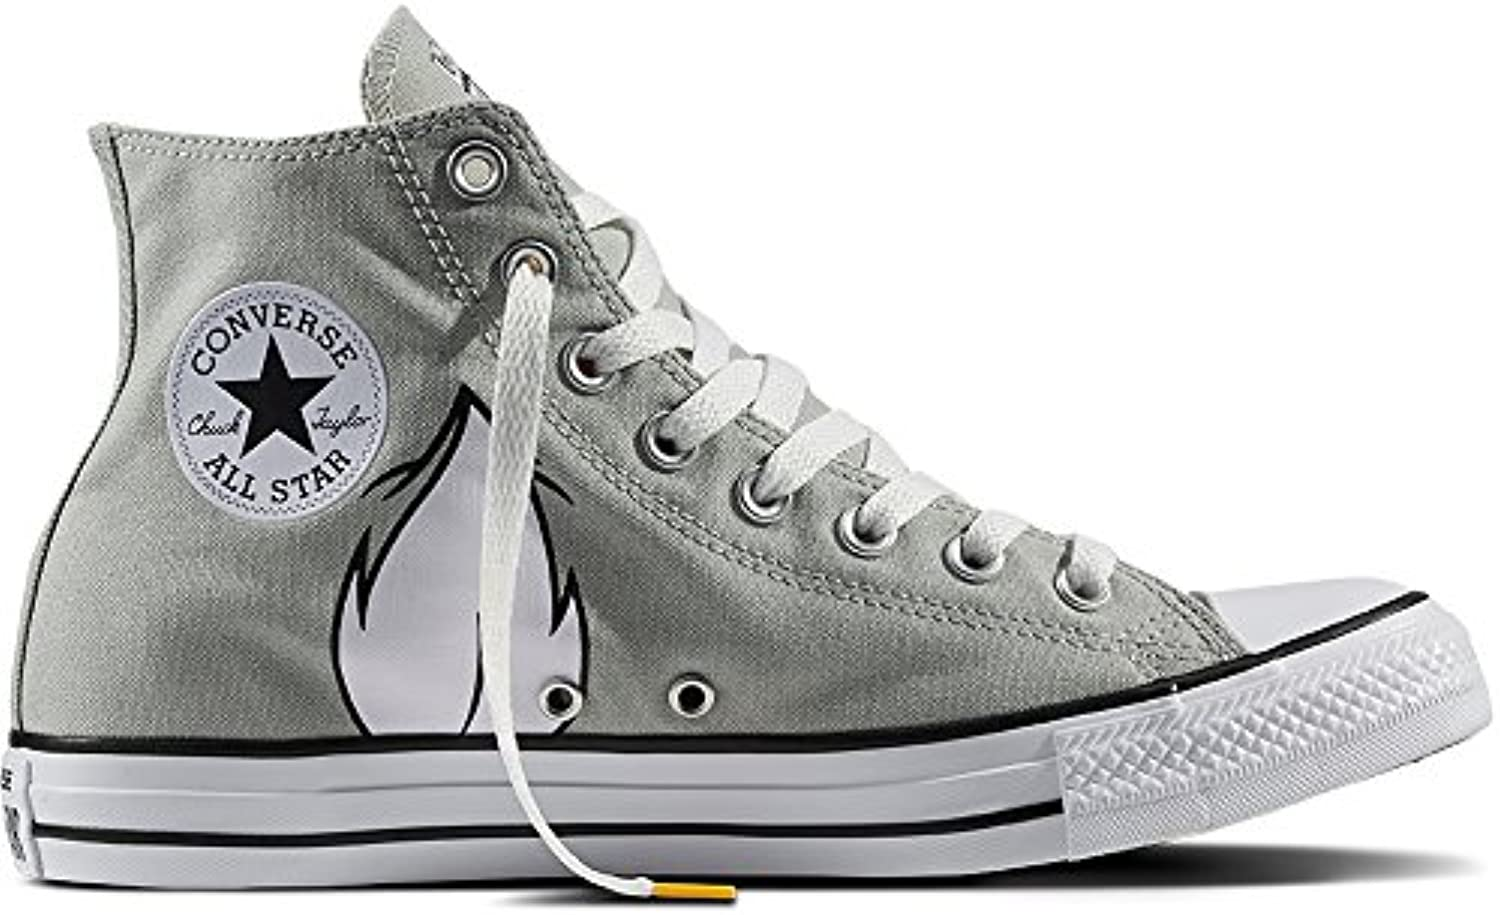 Converse Chuck Taylor All Star High Looney Tunes Rivalry Collection Bugs Bunny Grey White Black 158234C Limited